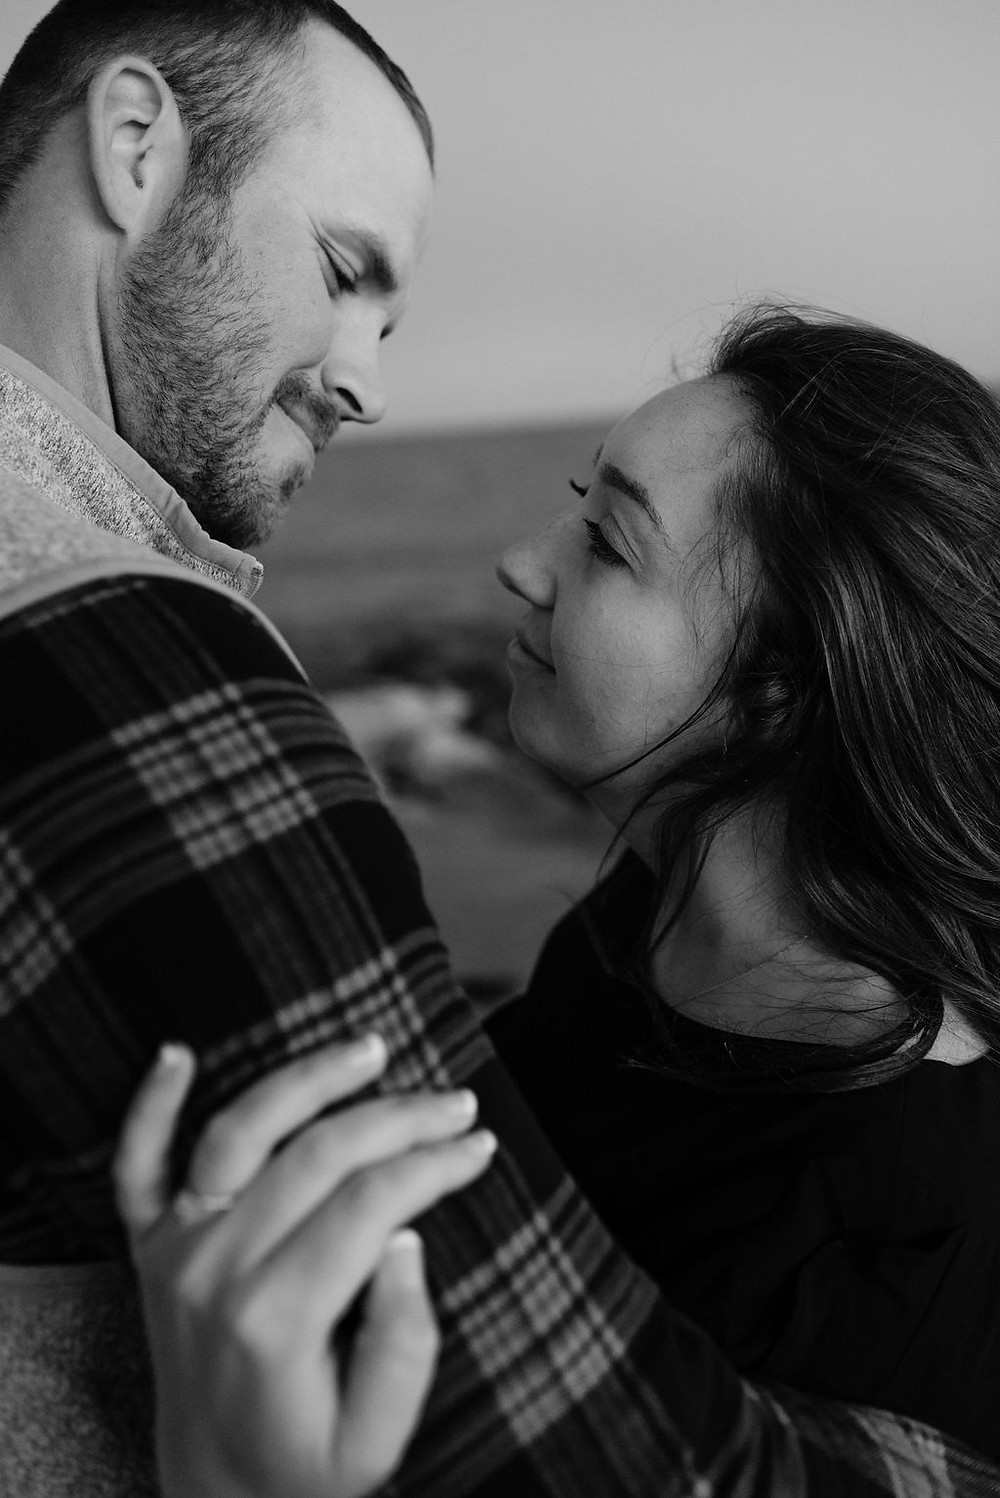 black and white engagement photo at lighthouse inn in West Dennis Cape cod, MA